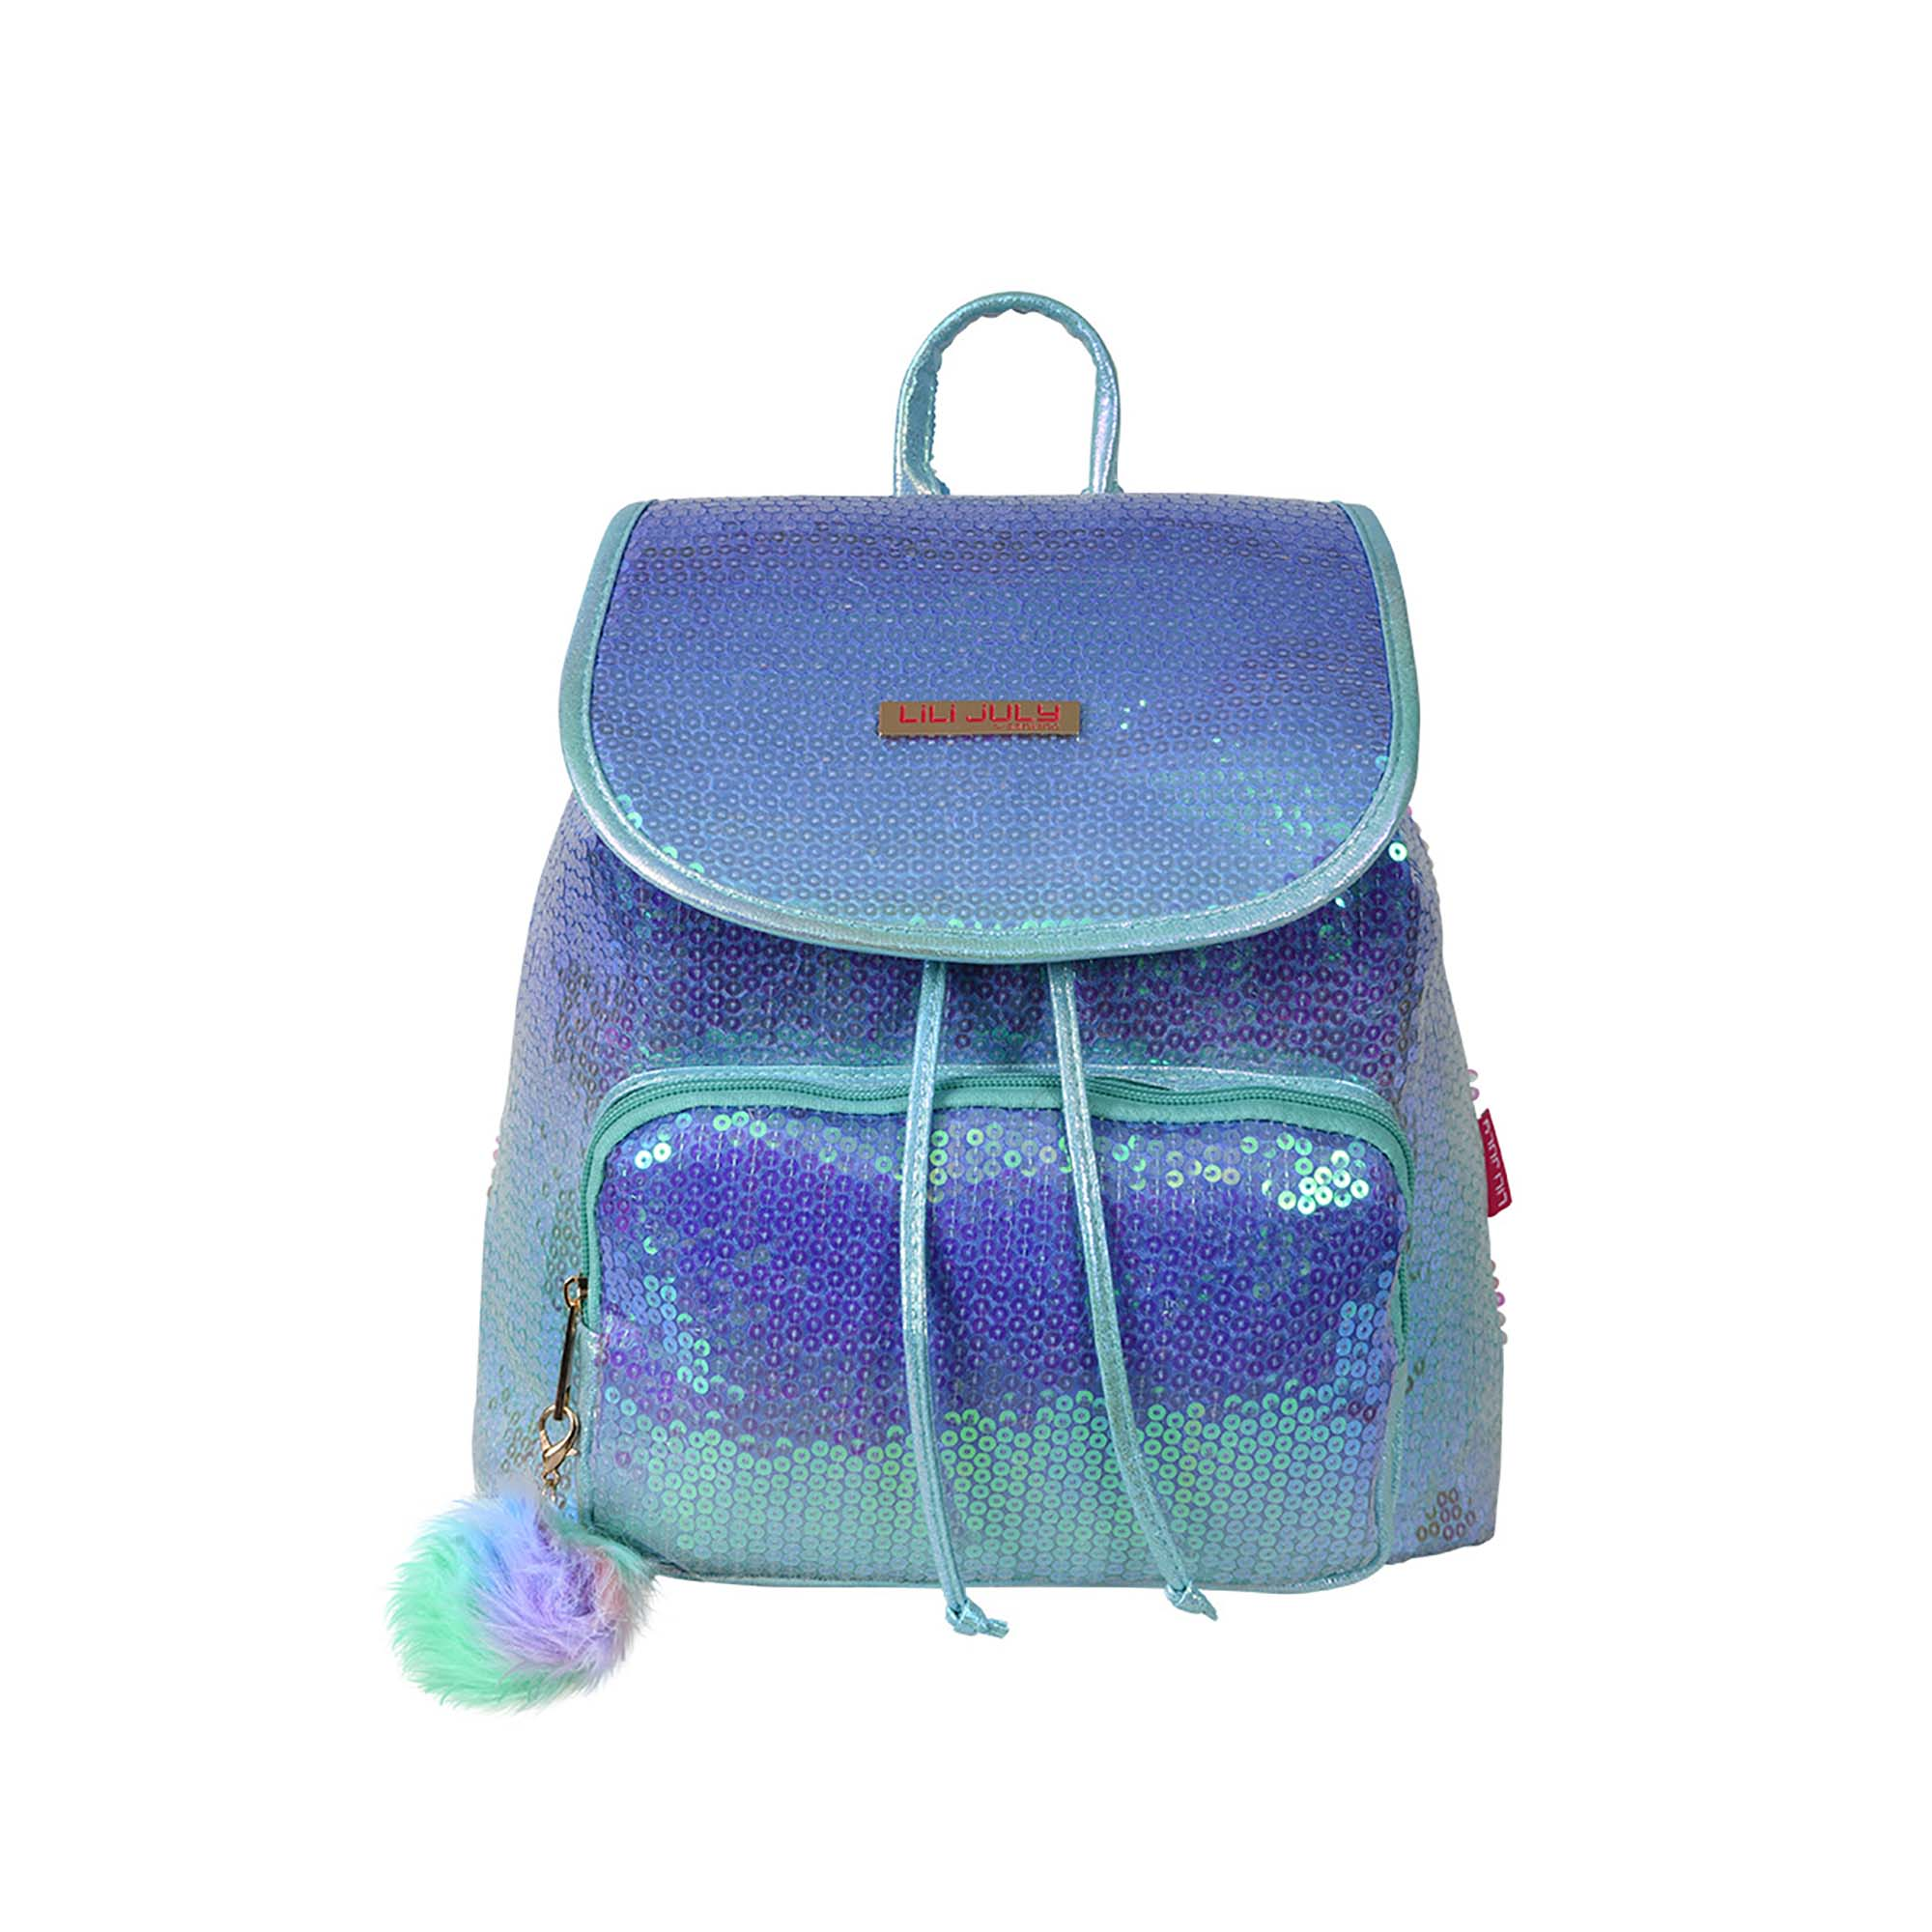 MOCHILA COLORIDA INFANTIL POL LILI JULY - LJM28U30